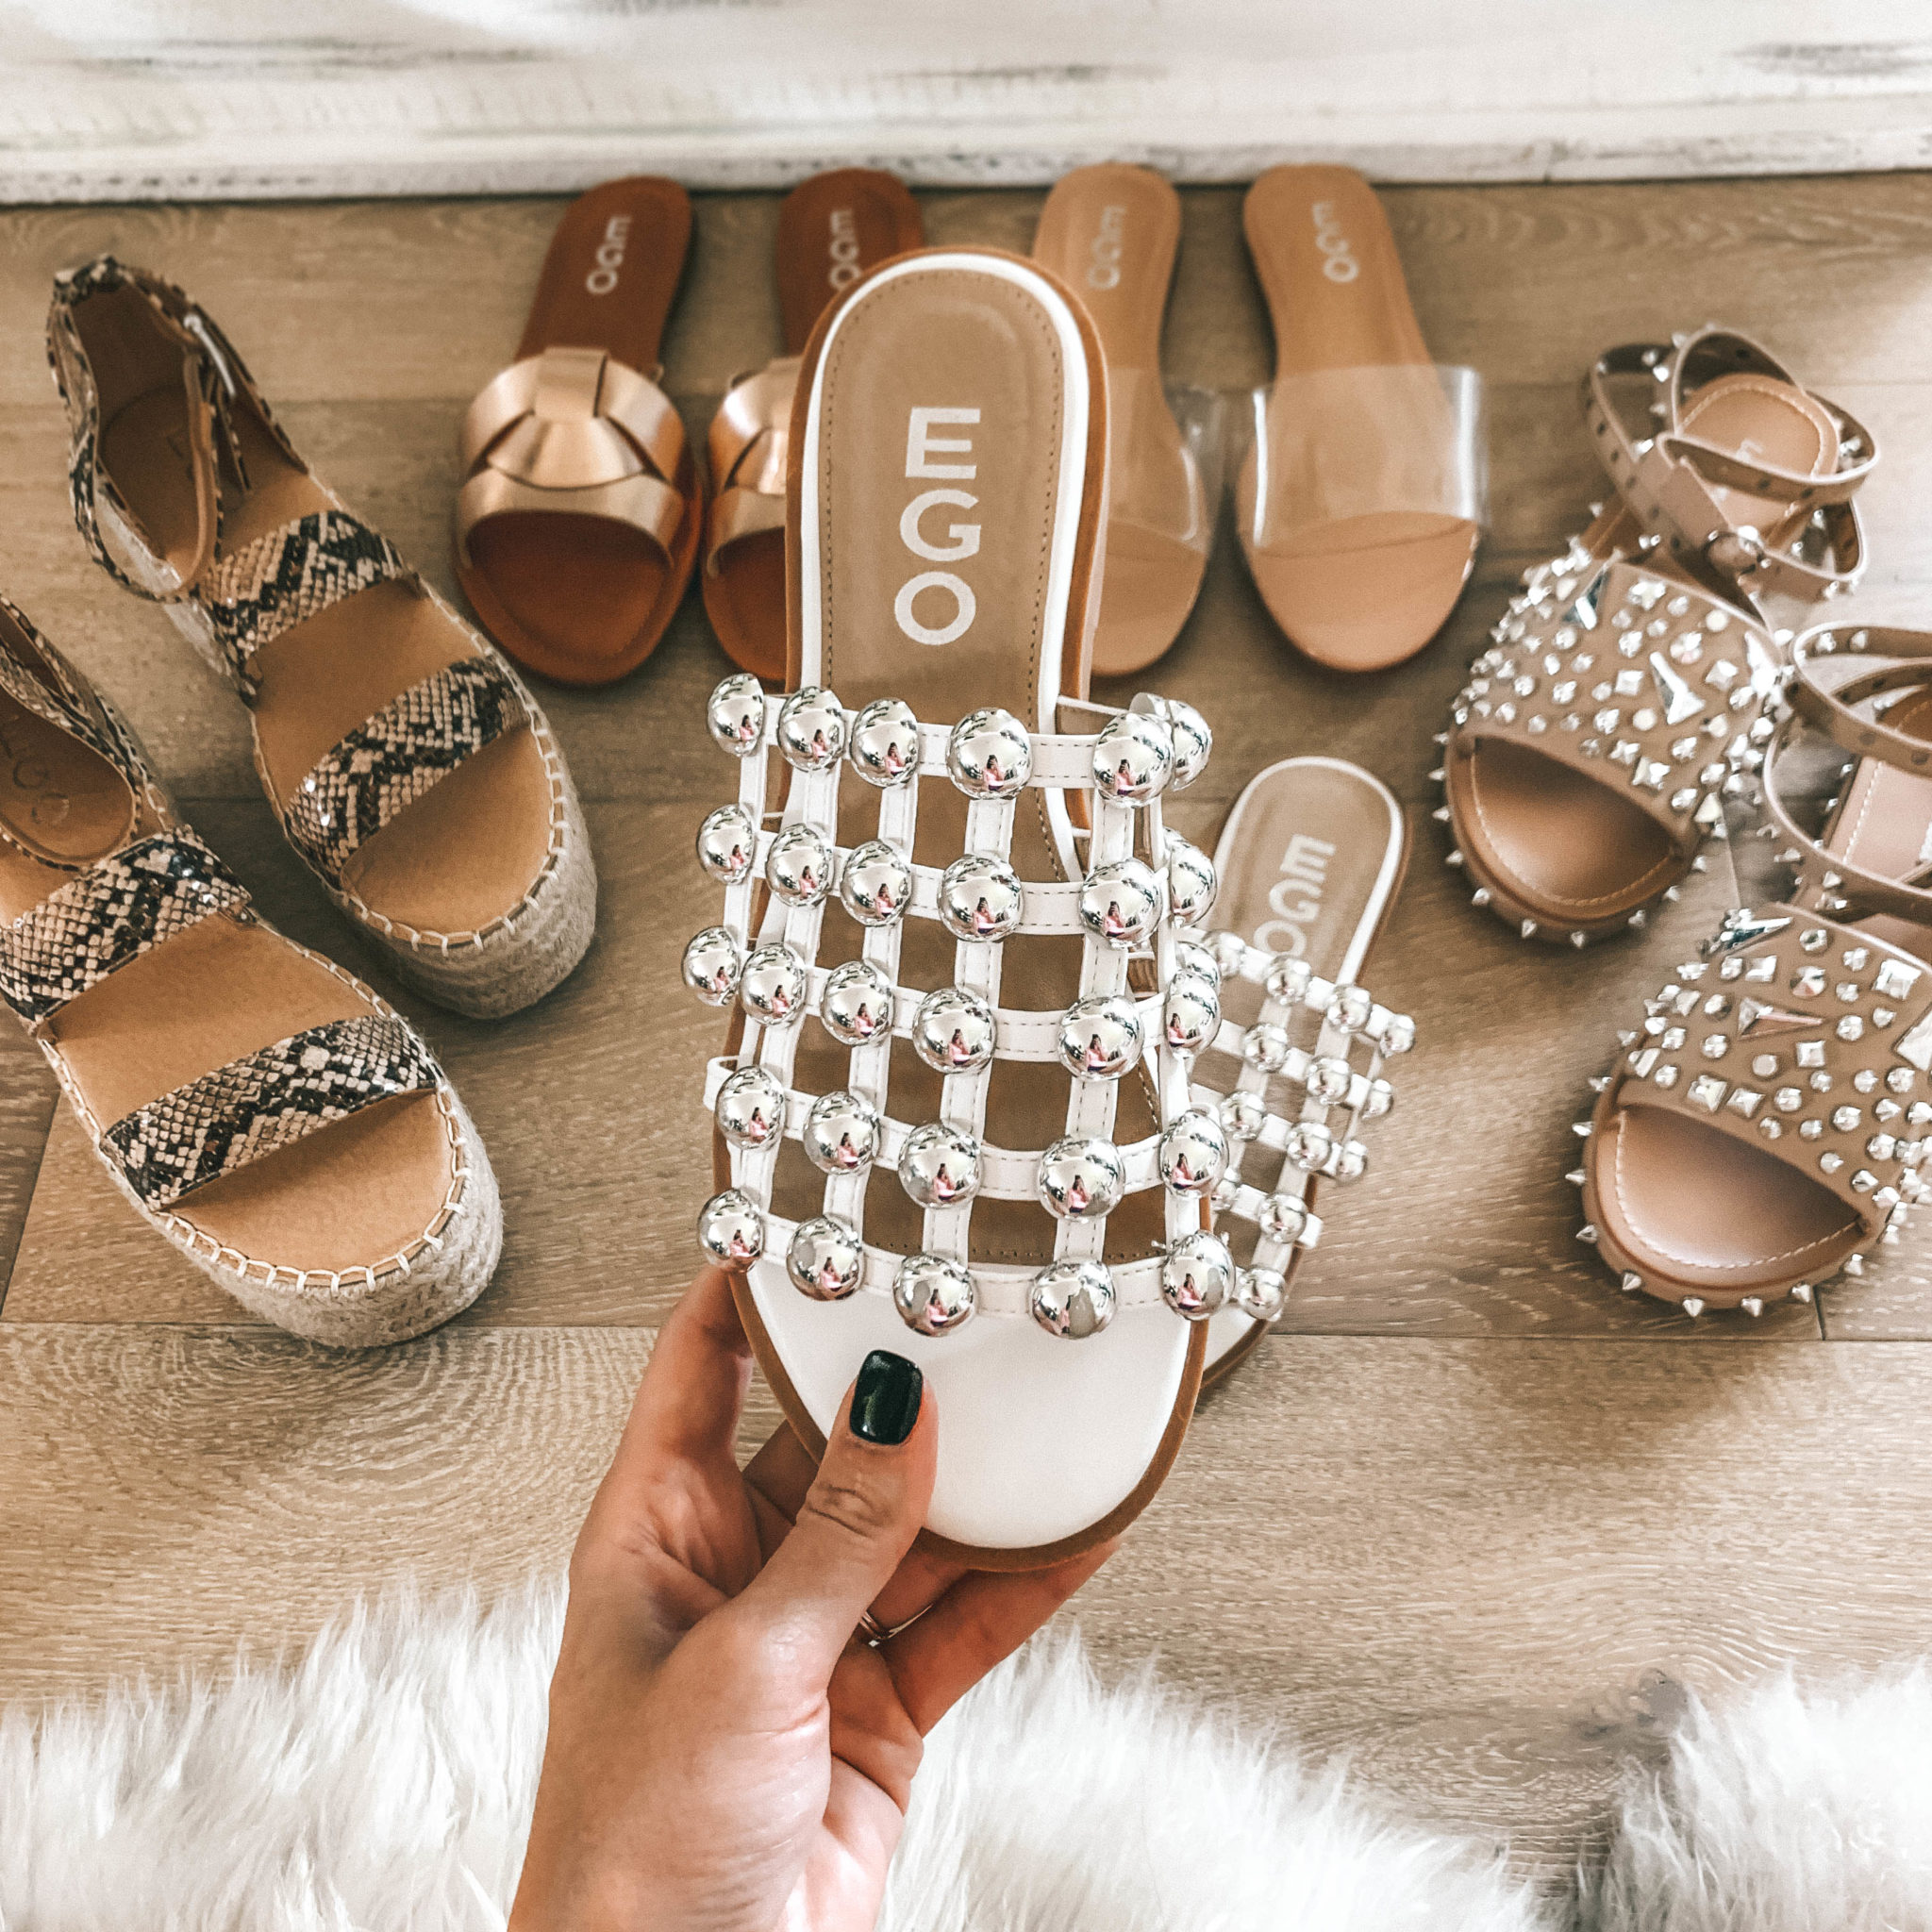 5 Must Have Affordable EGO Sandals for Summer by popular Austin fashion blog, Dressed to Kill: image of woman holding EGO sandals Hazel Silver Studded Detail Slider In White Faux Leather